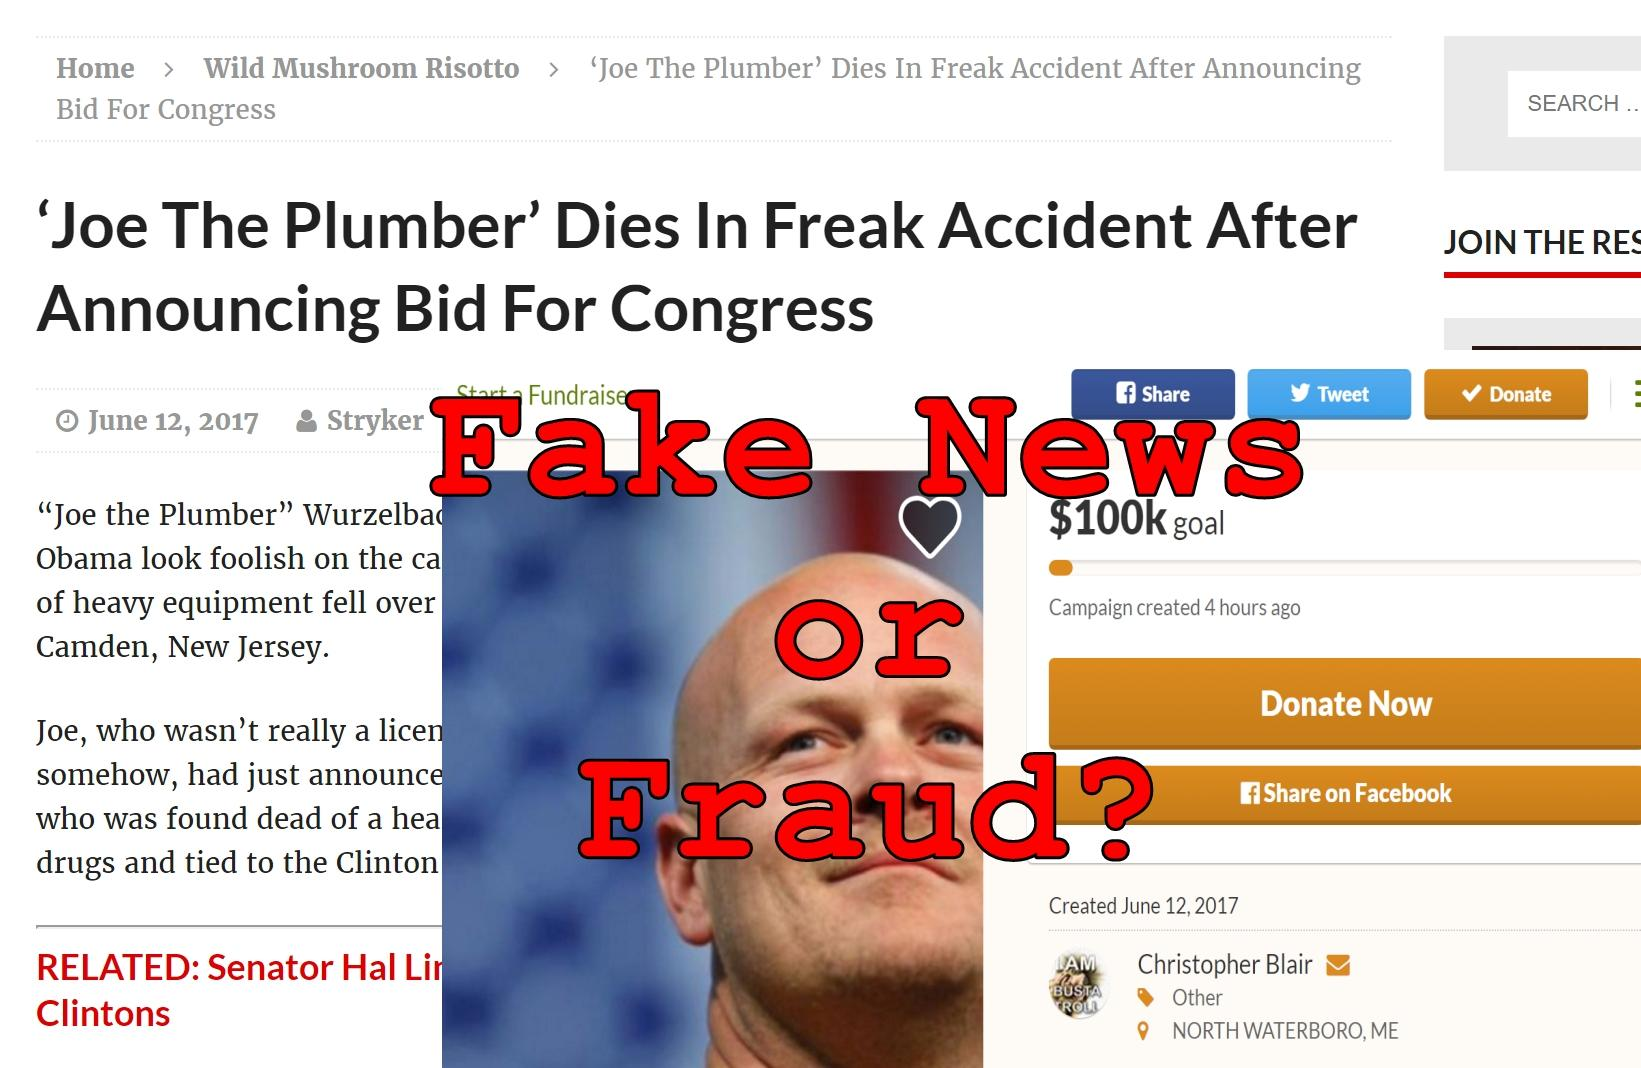 Fake News: Joe The Plumber Did NOT Die In Freak Accident After Announcing Bid For Congress